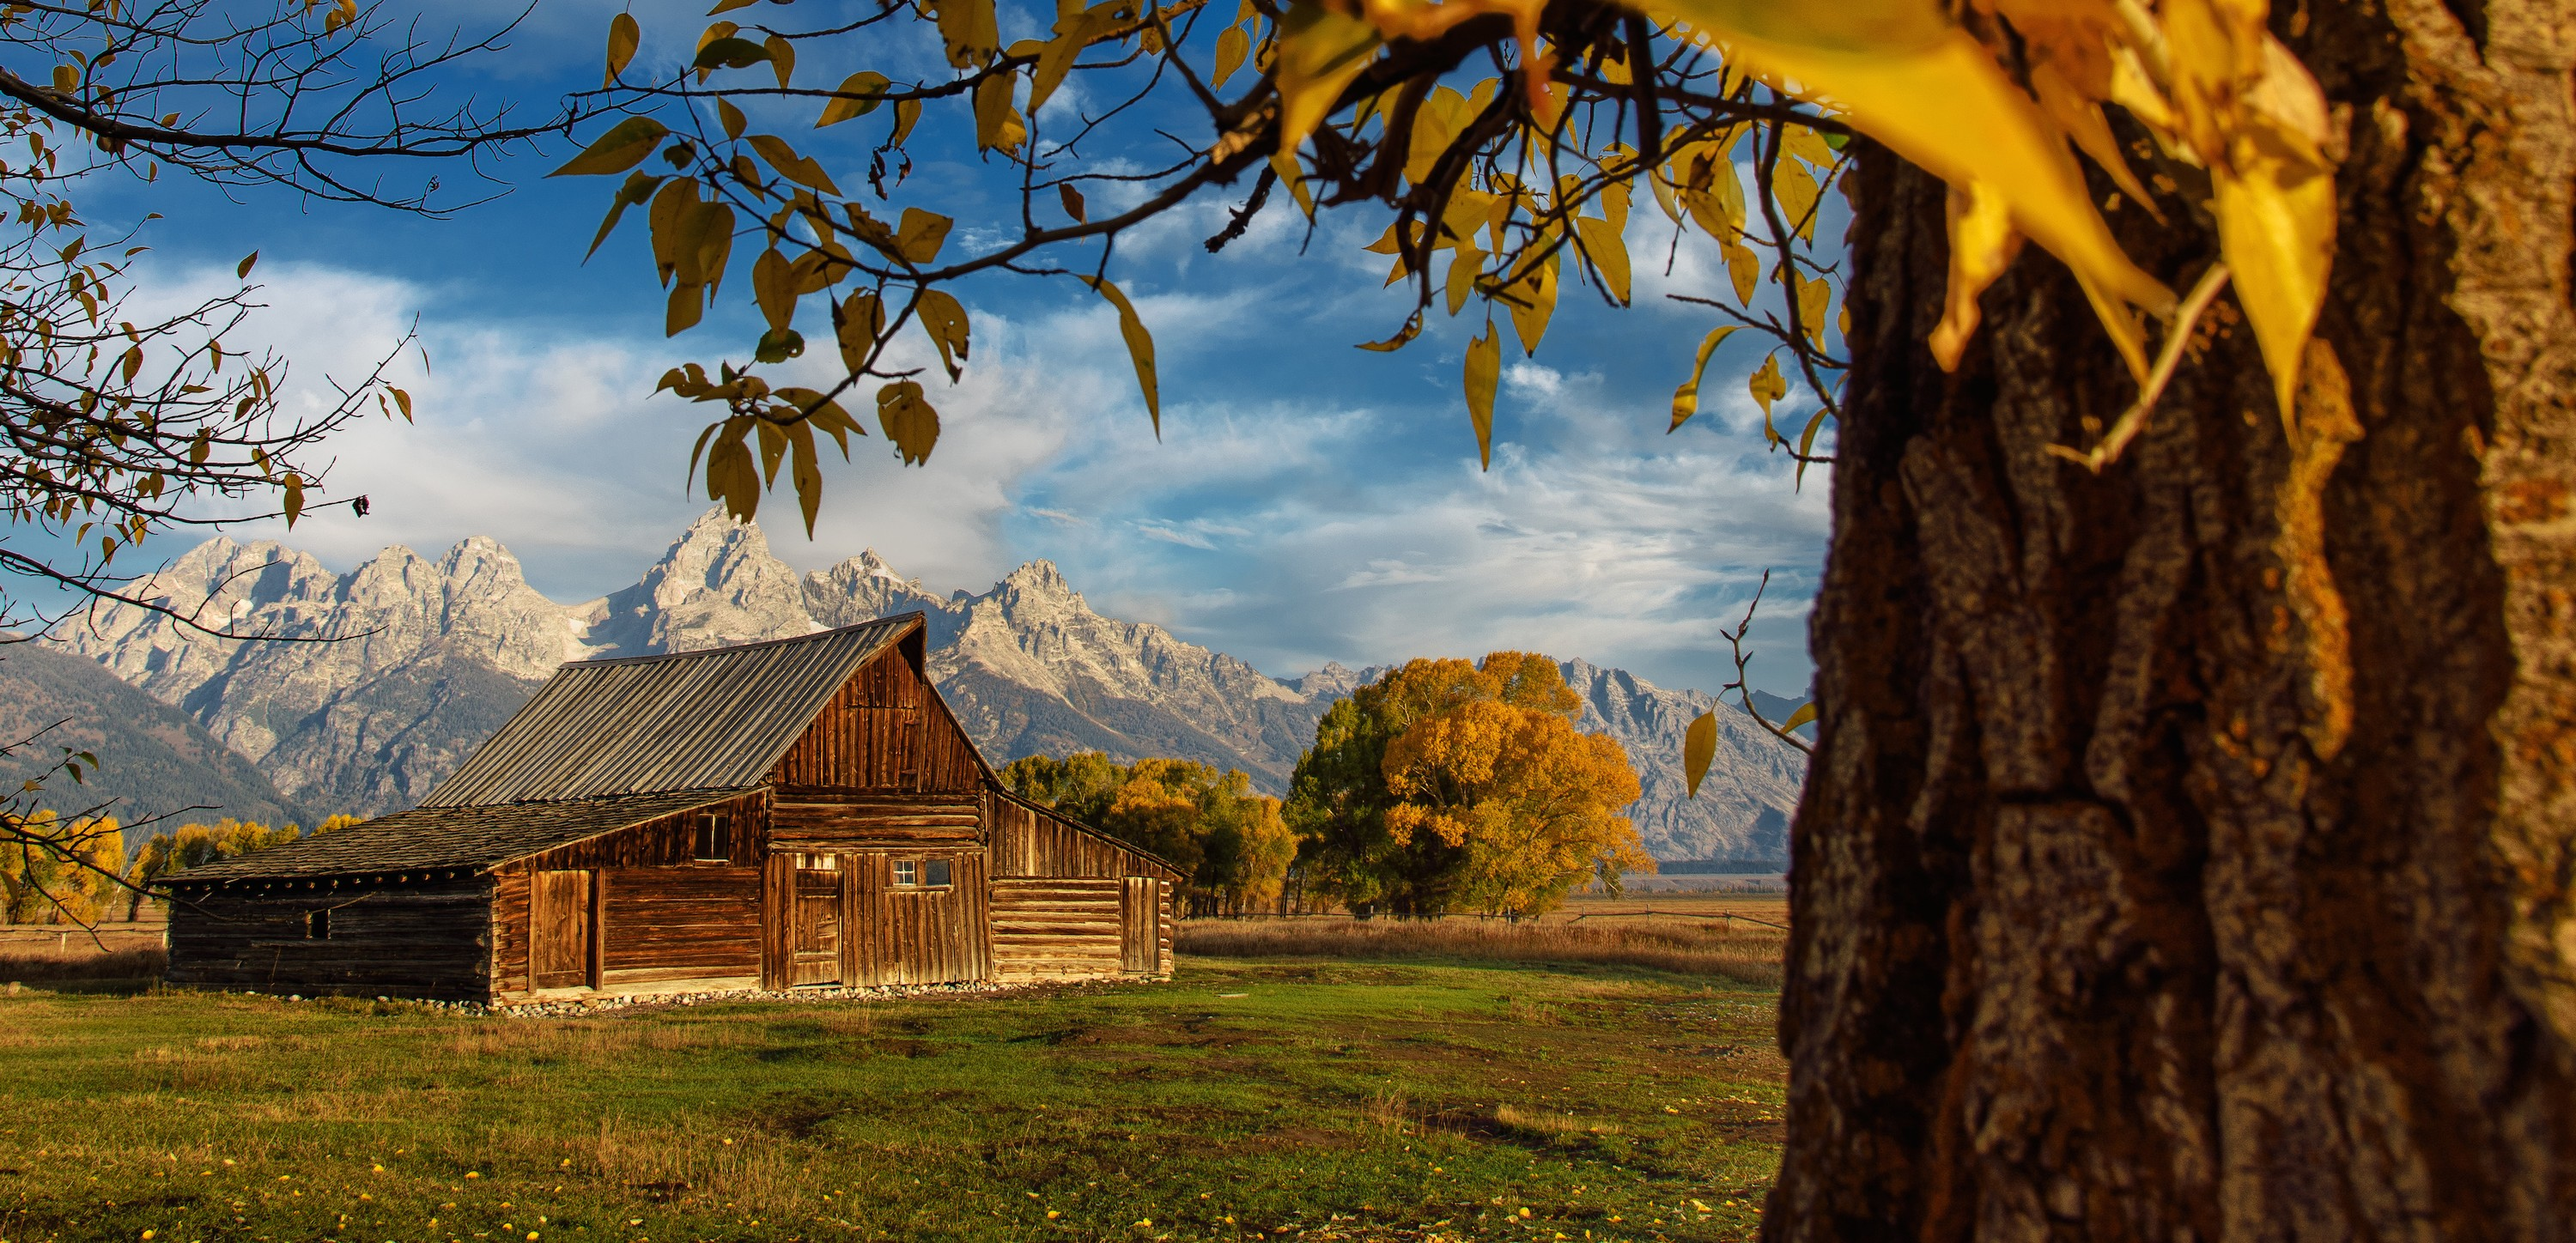 500px Road Trip Photo Diary Days 8-12: Yellowstone National Park, Grand Tetons & Bisons